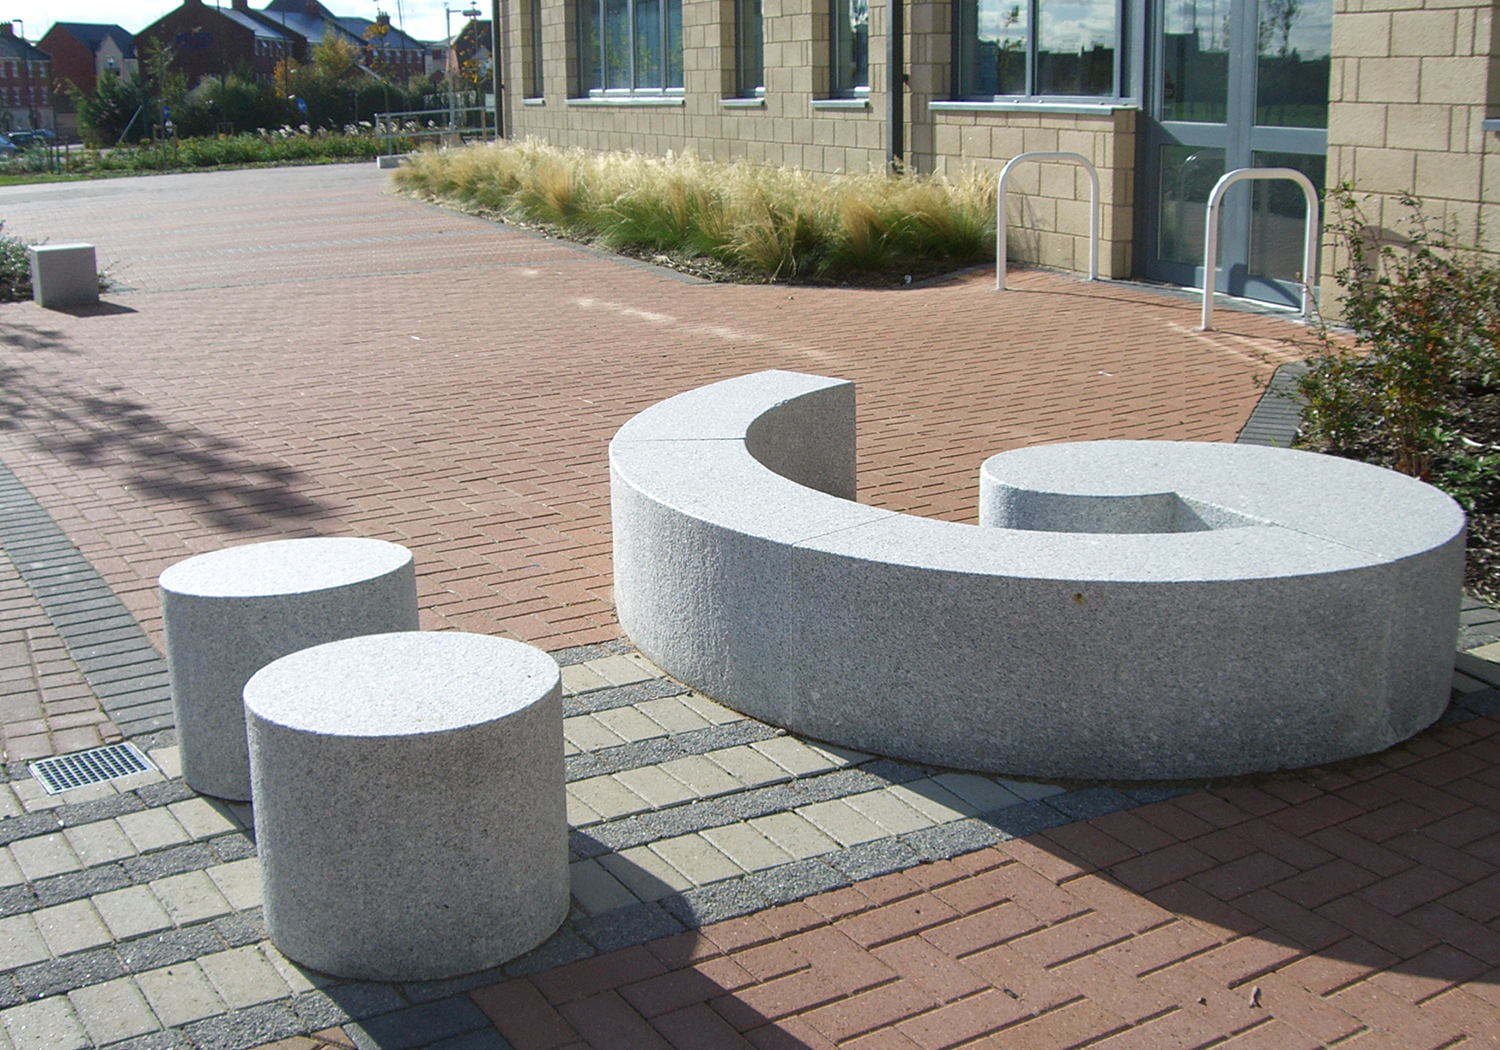 Projects-Education-Swindon-MusicNotes-1500x1050